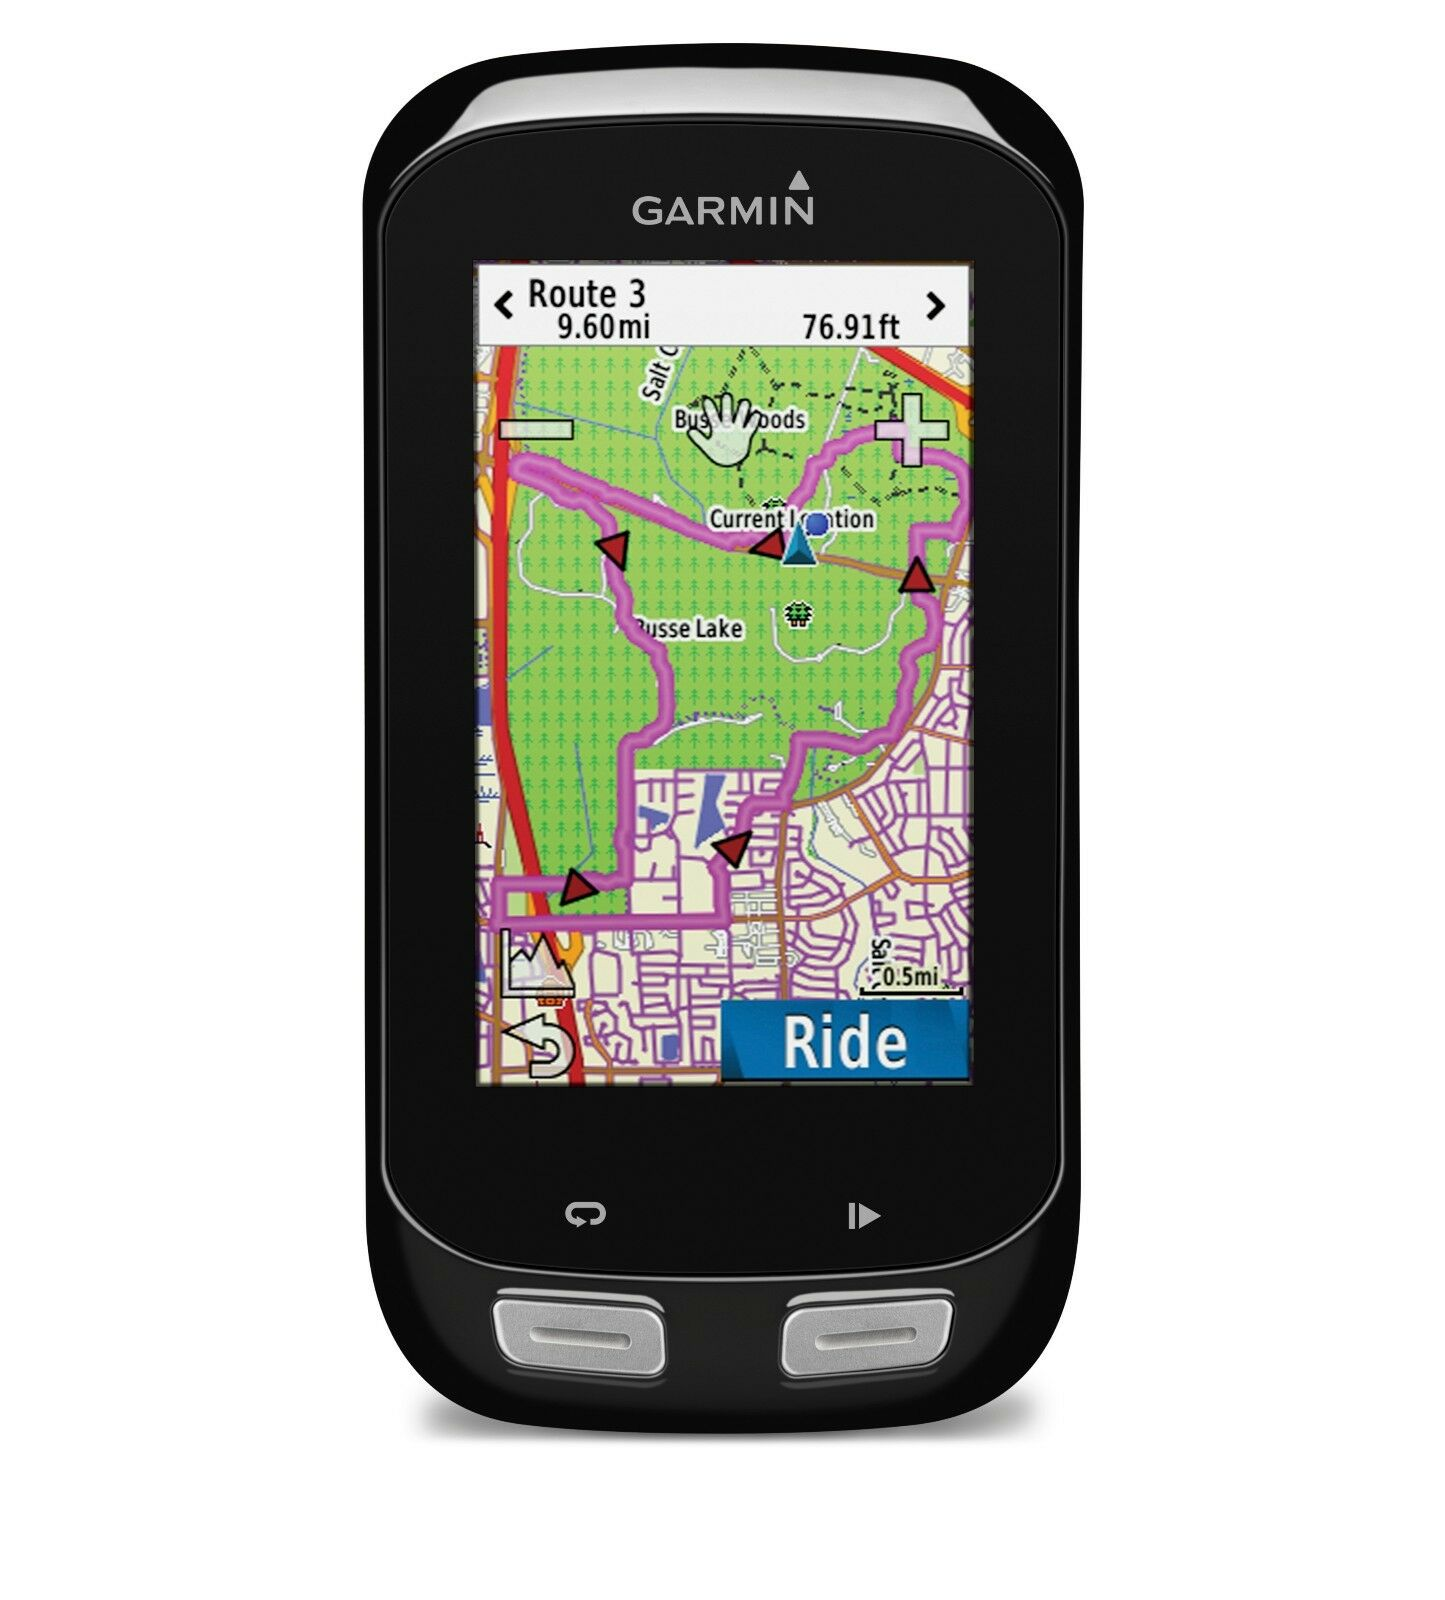 Garmin Edge 1000 GPS Bike Computer   010-01161-00   AUTHORIZED GARMIN DEALER